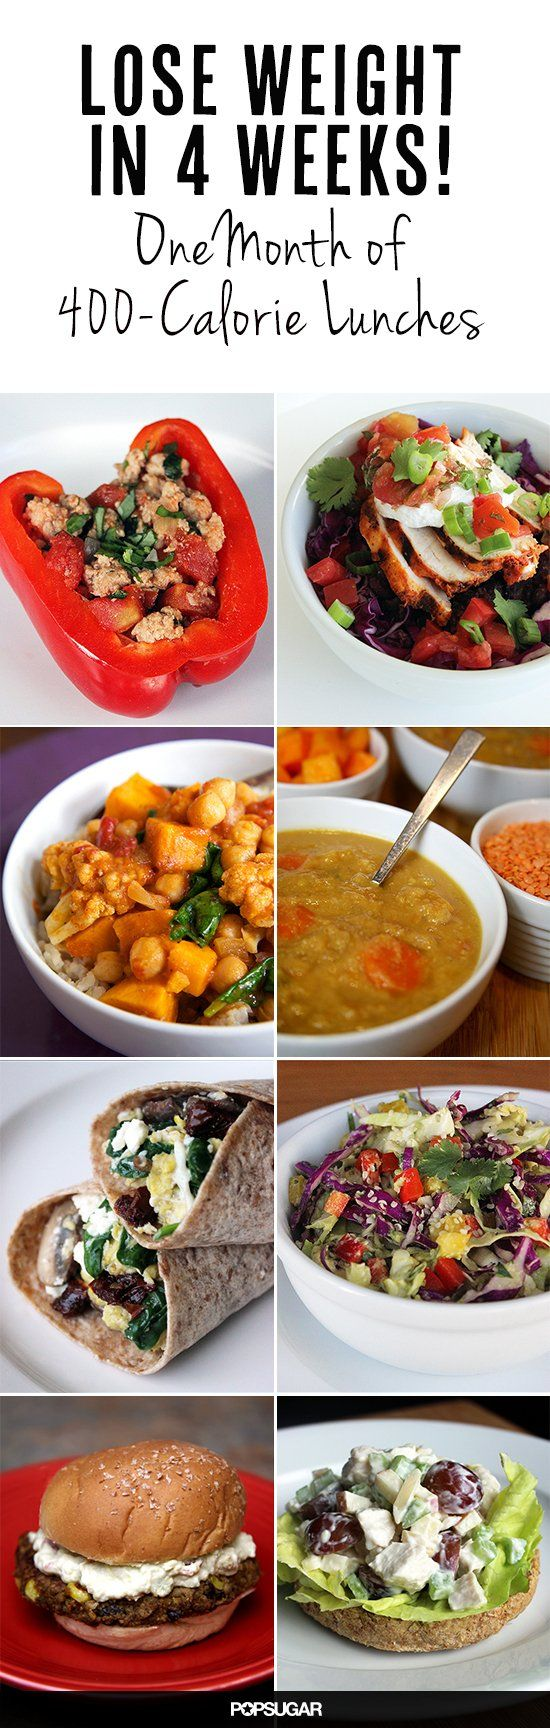 Stay Healthy, Eat Clean! 1 Month of 400-Calorie Lunches